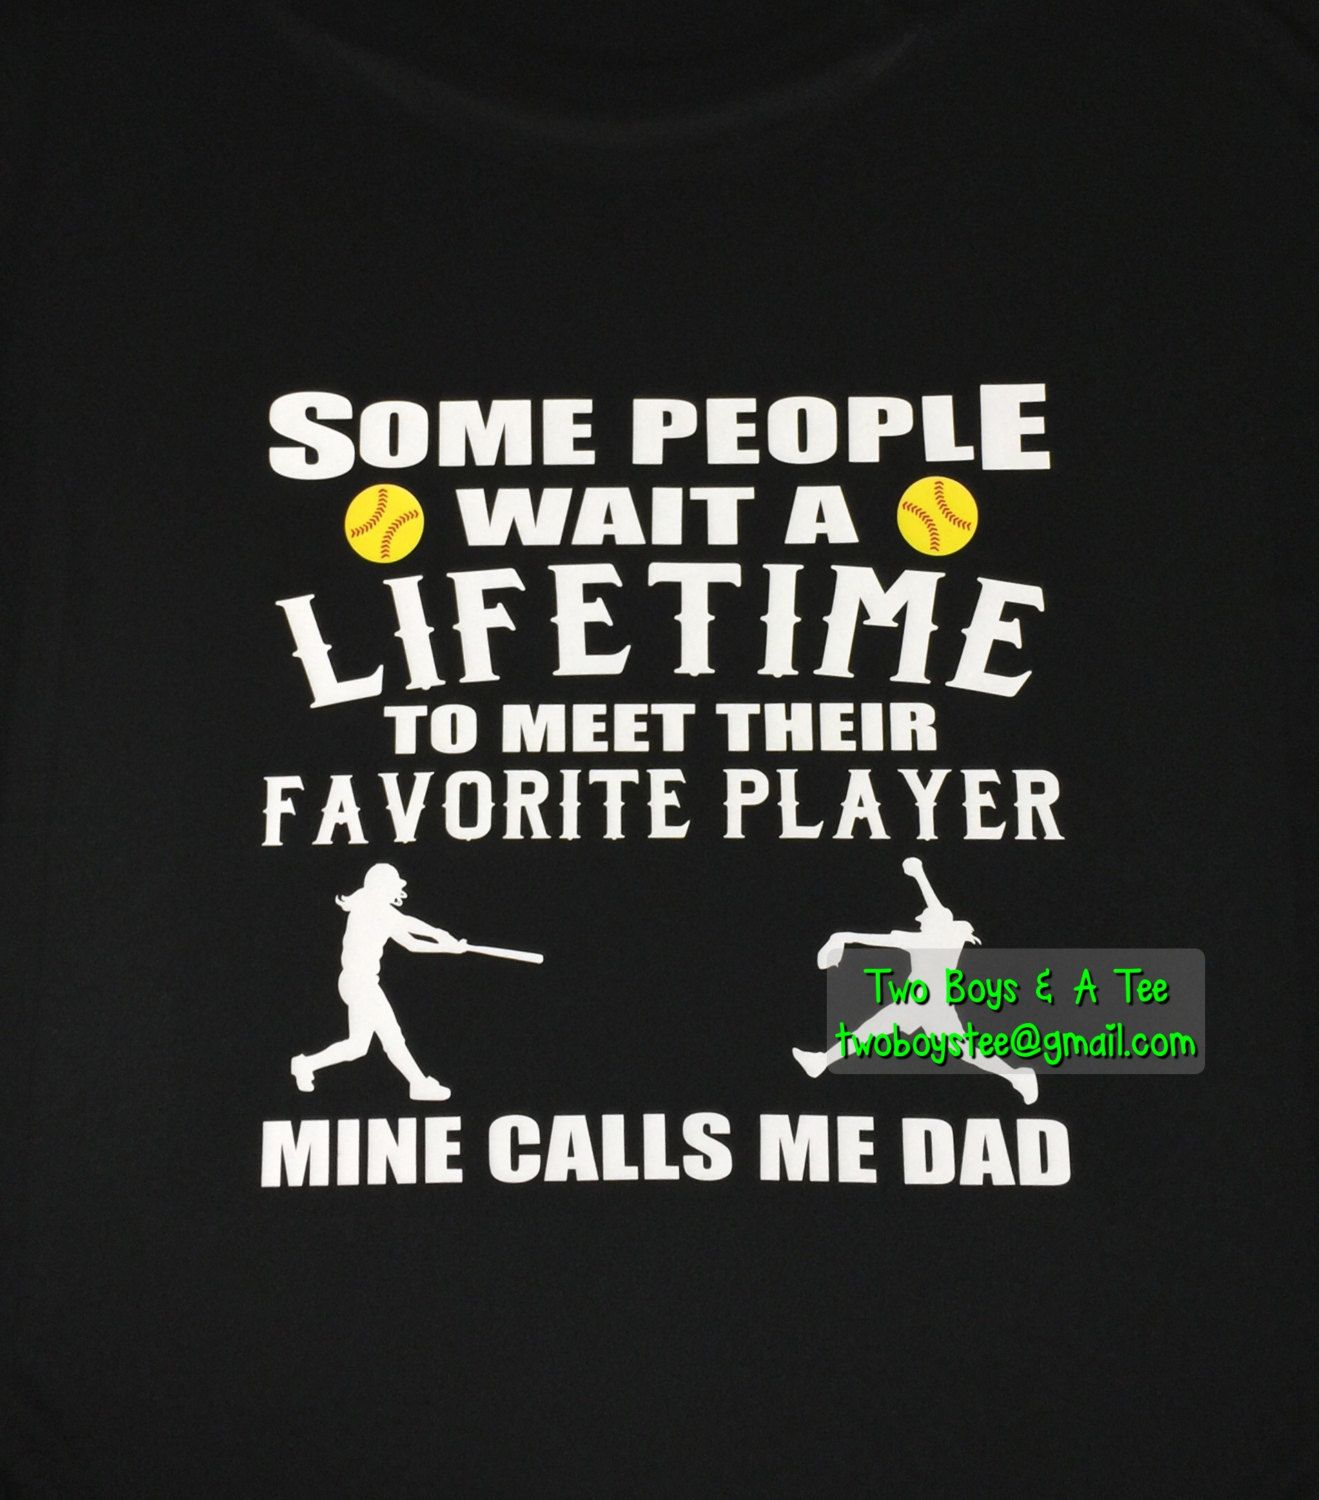 901eb9d6b Some People Wait A Lifetime to meet Their Favorite Player Softball Baseball Football  Soccer T-Shirt Personalized Tee Calls Me Mom Dad by TwoBoysAndATee on ...